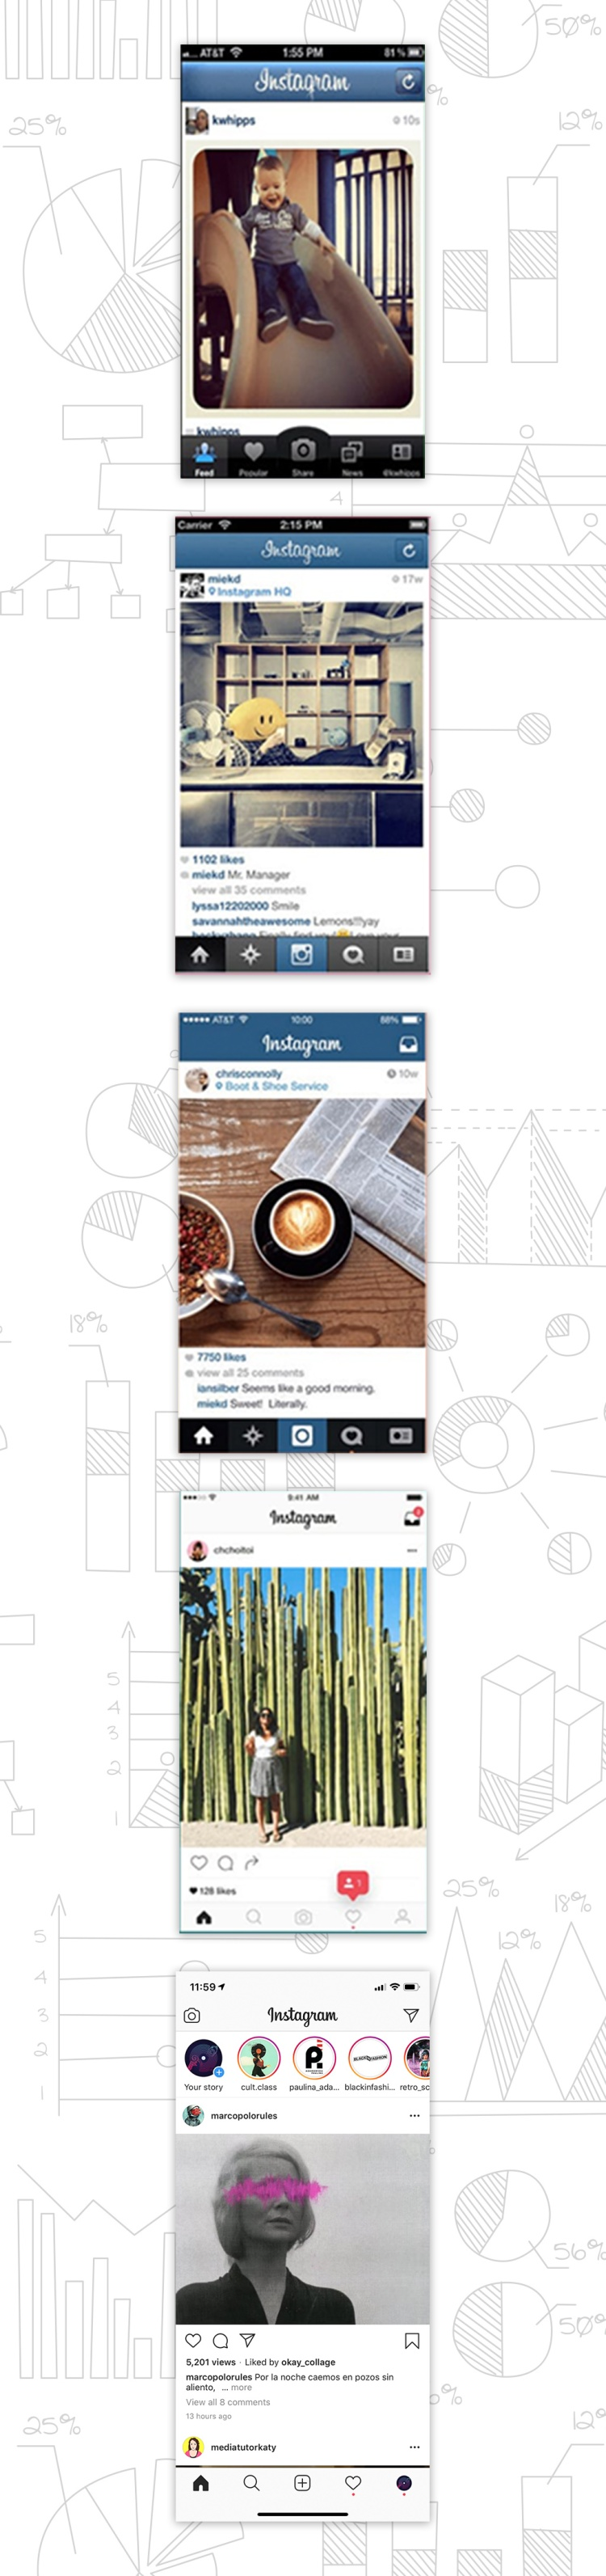 Instagram as an Example of Iterative Design